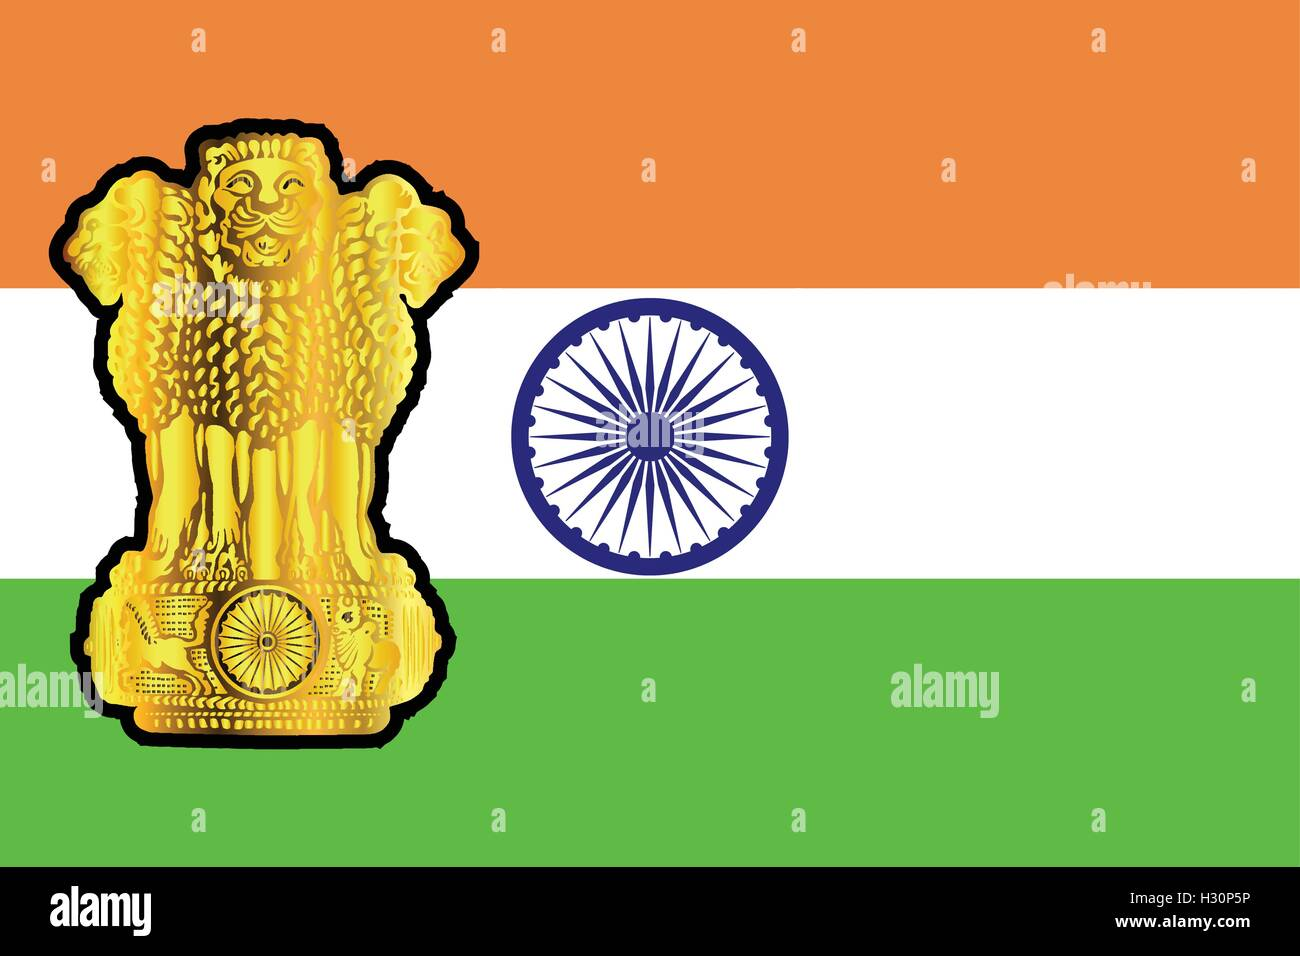 The flag and national emblem of India in white green and